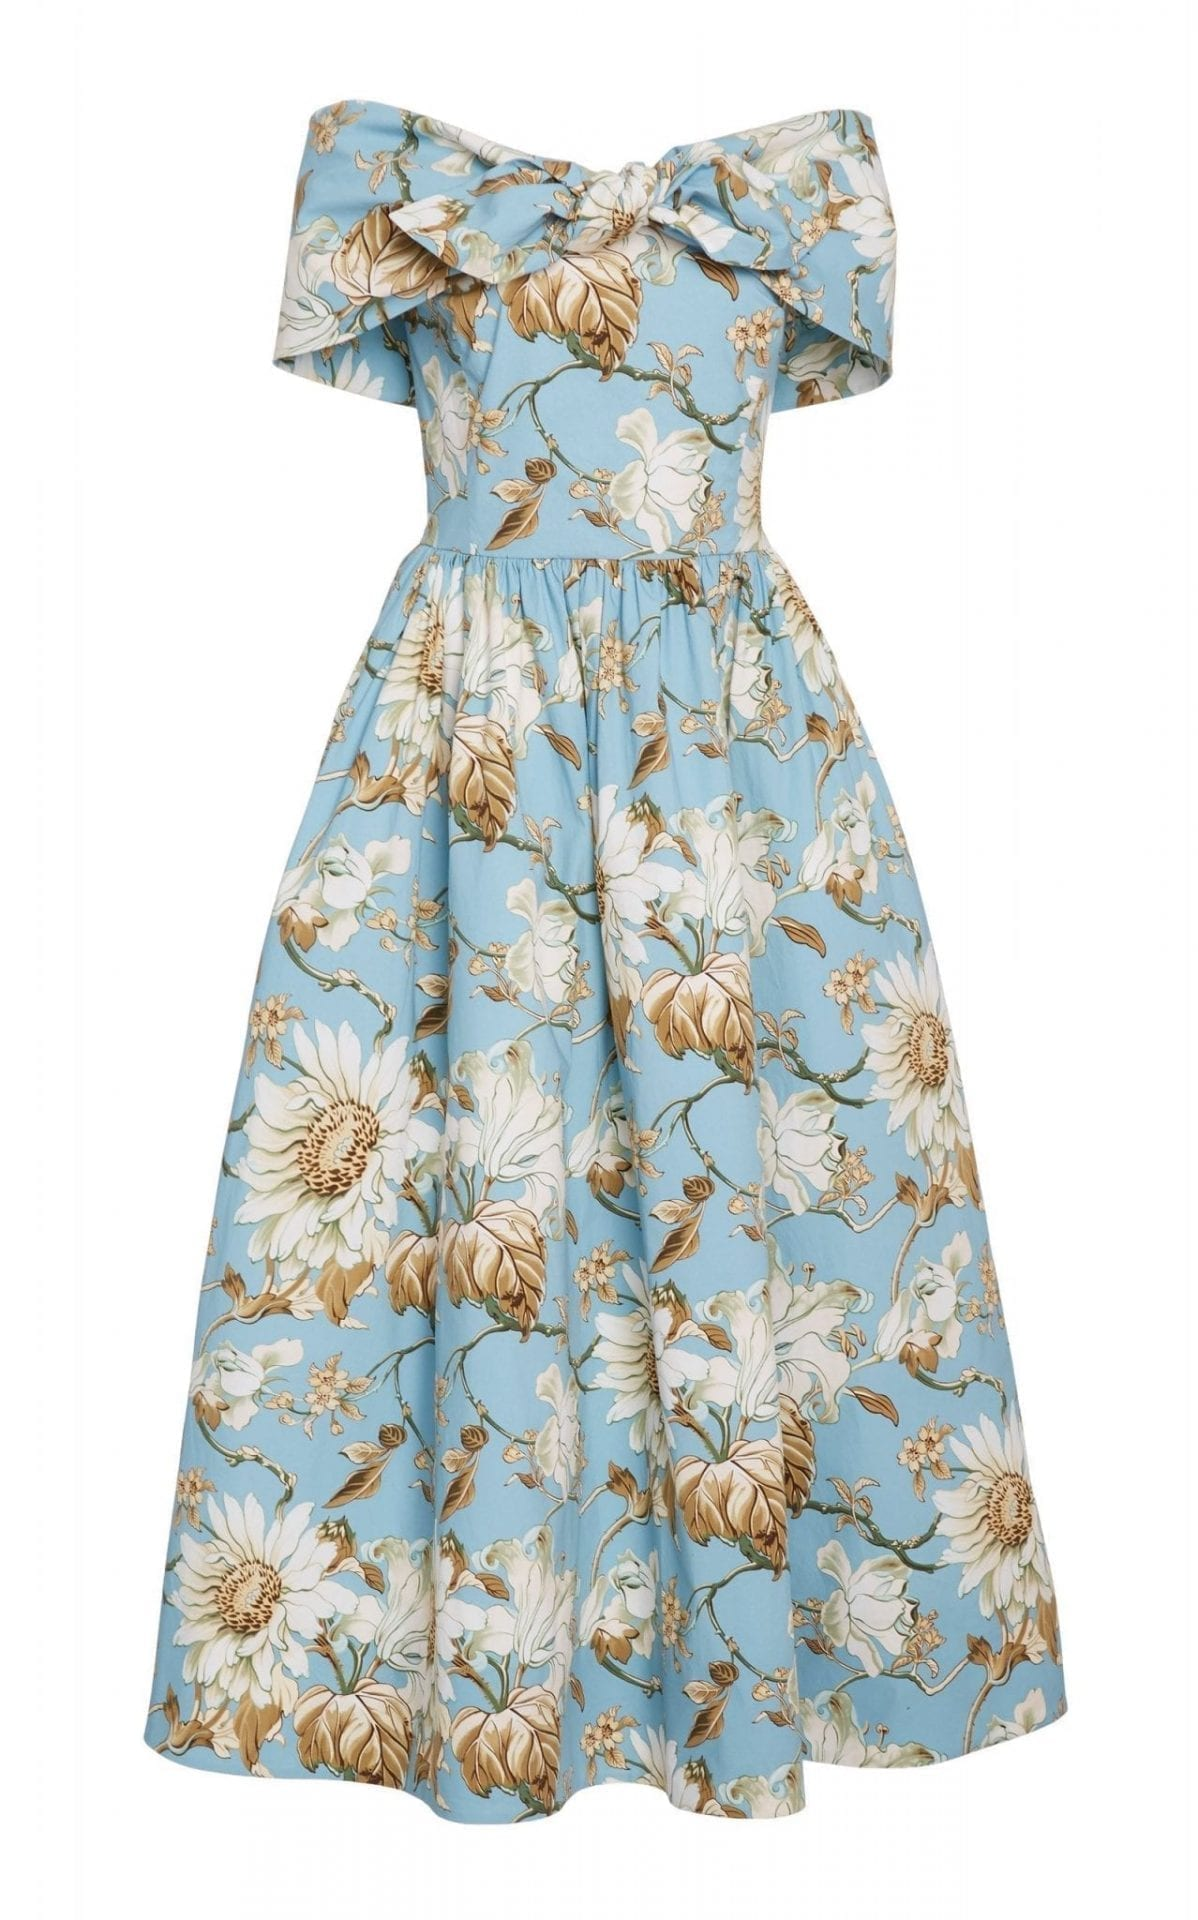 OSCAR DE LA RENTA Bow-Accented Floral-Print Stretch-Cotton Dress